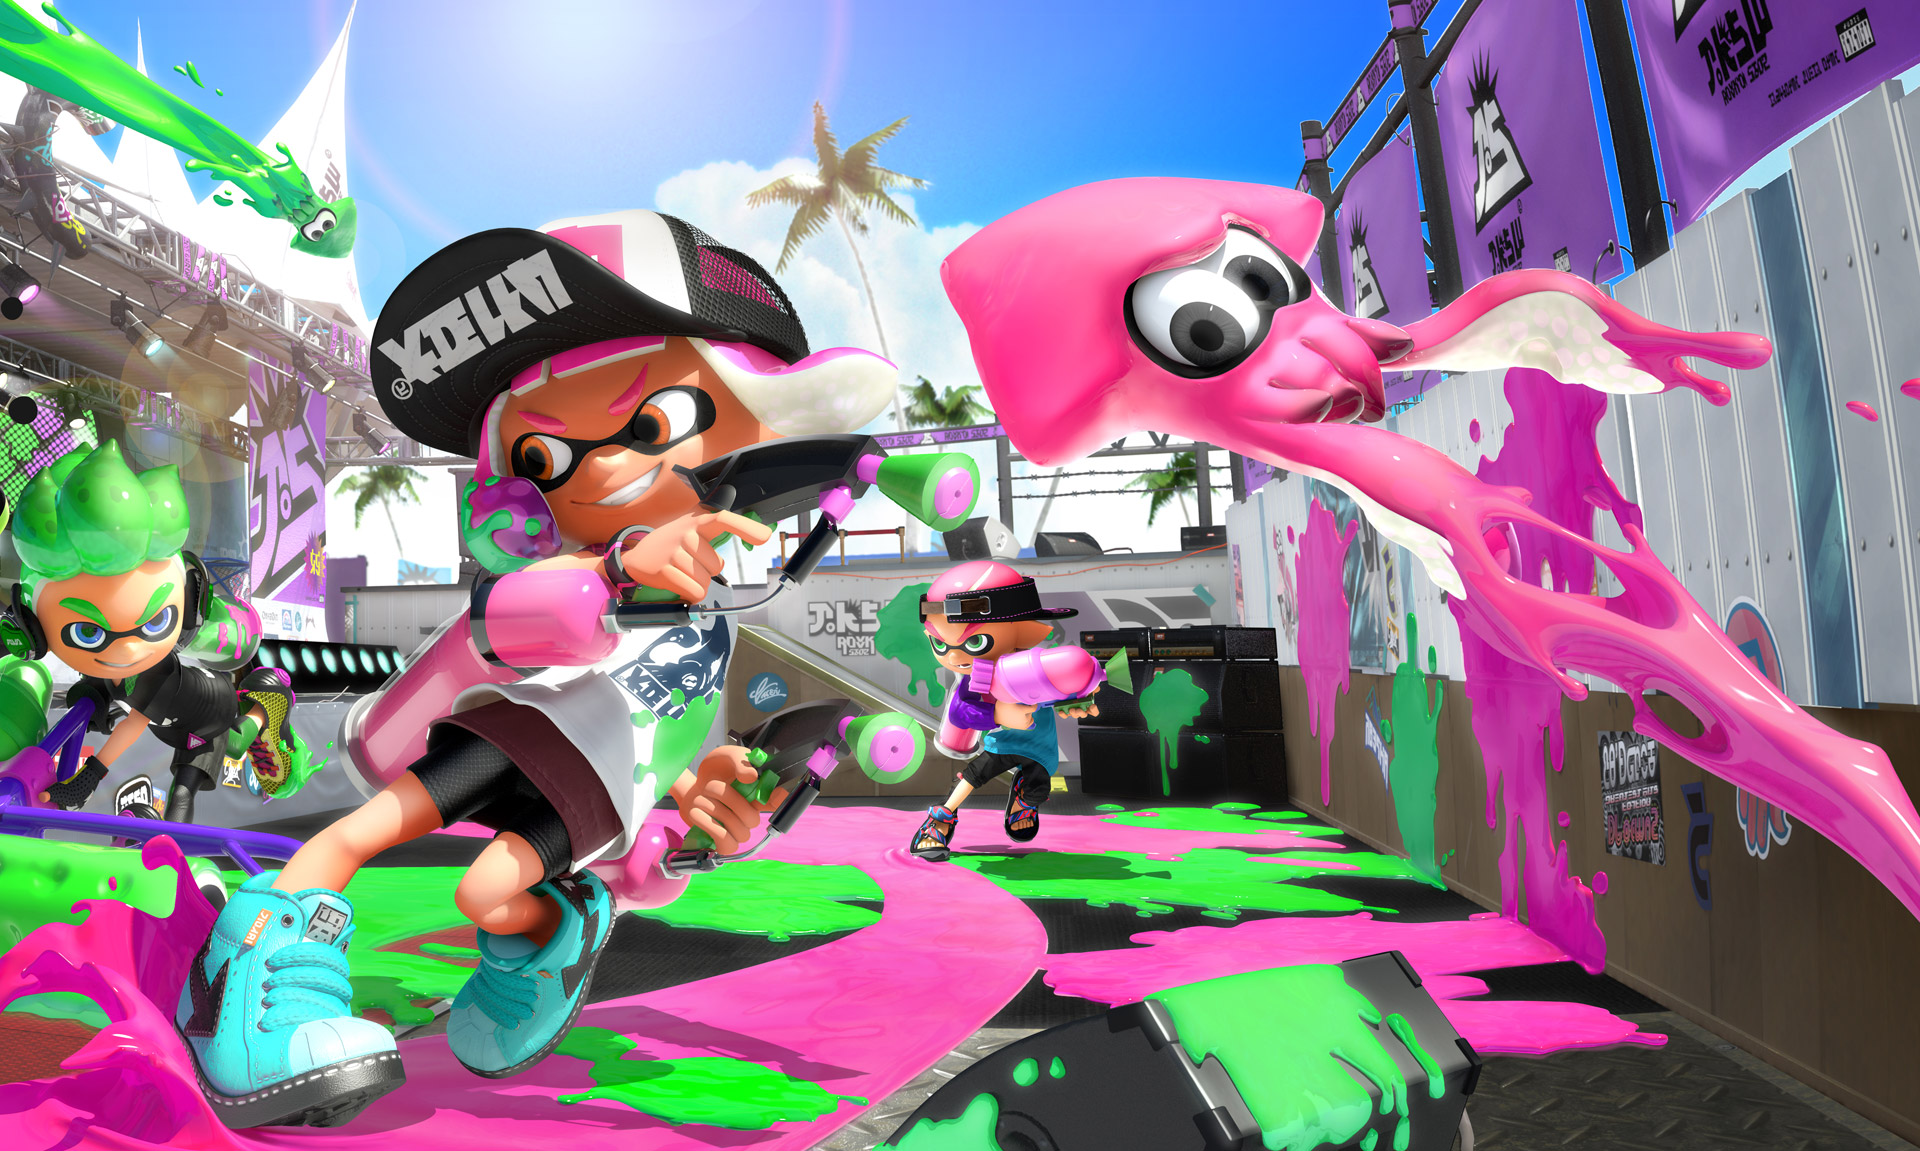 Splatoon 2 players are making some incredible, photorealistic art